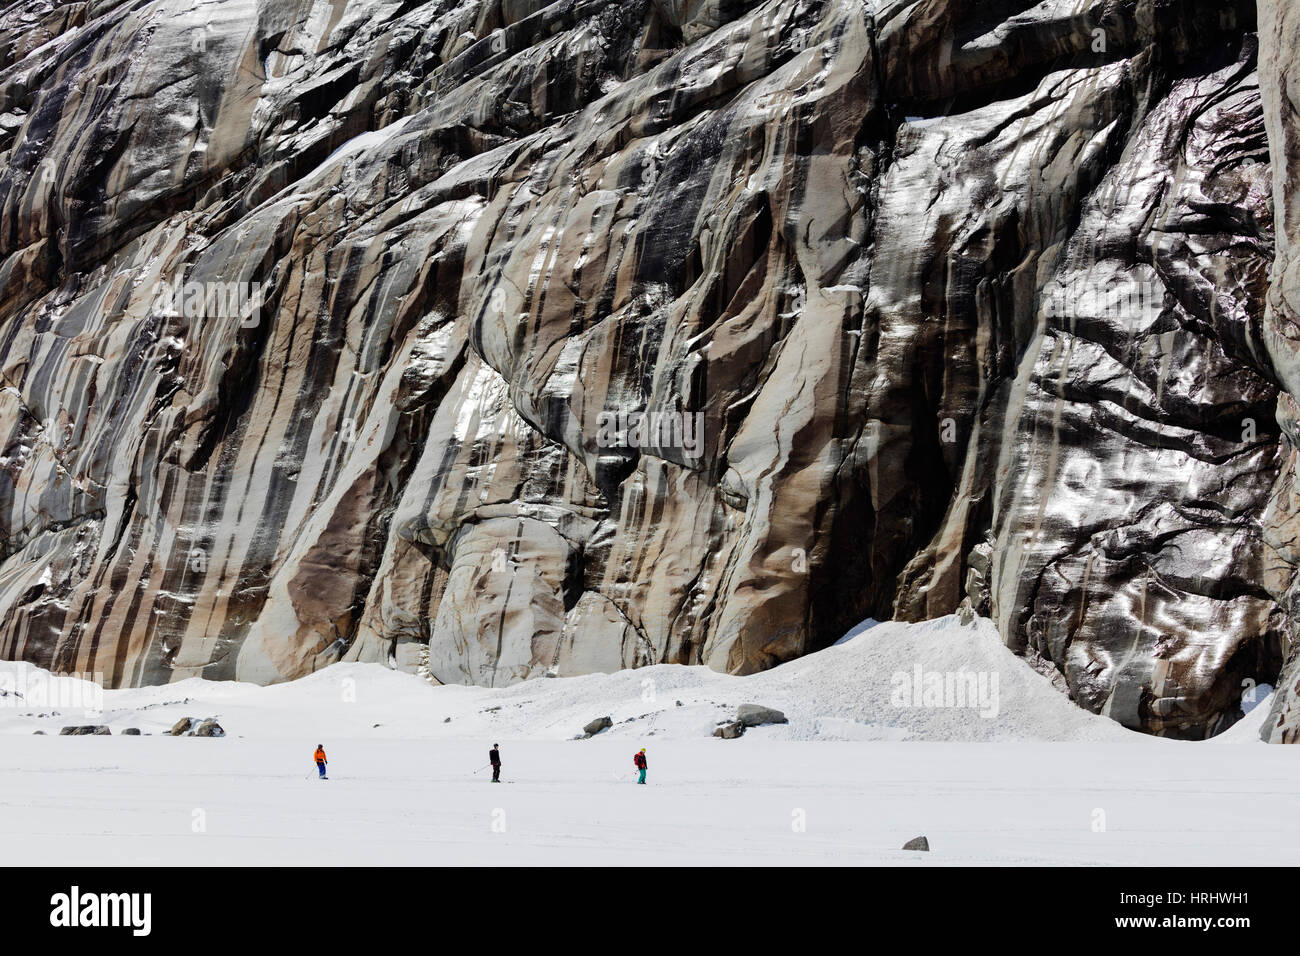 Vallee Blanche off piste ski tour, Chamonix, Rhone Alpes, Haute Savoie, French Alps, France - Stock Image